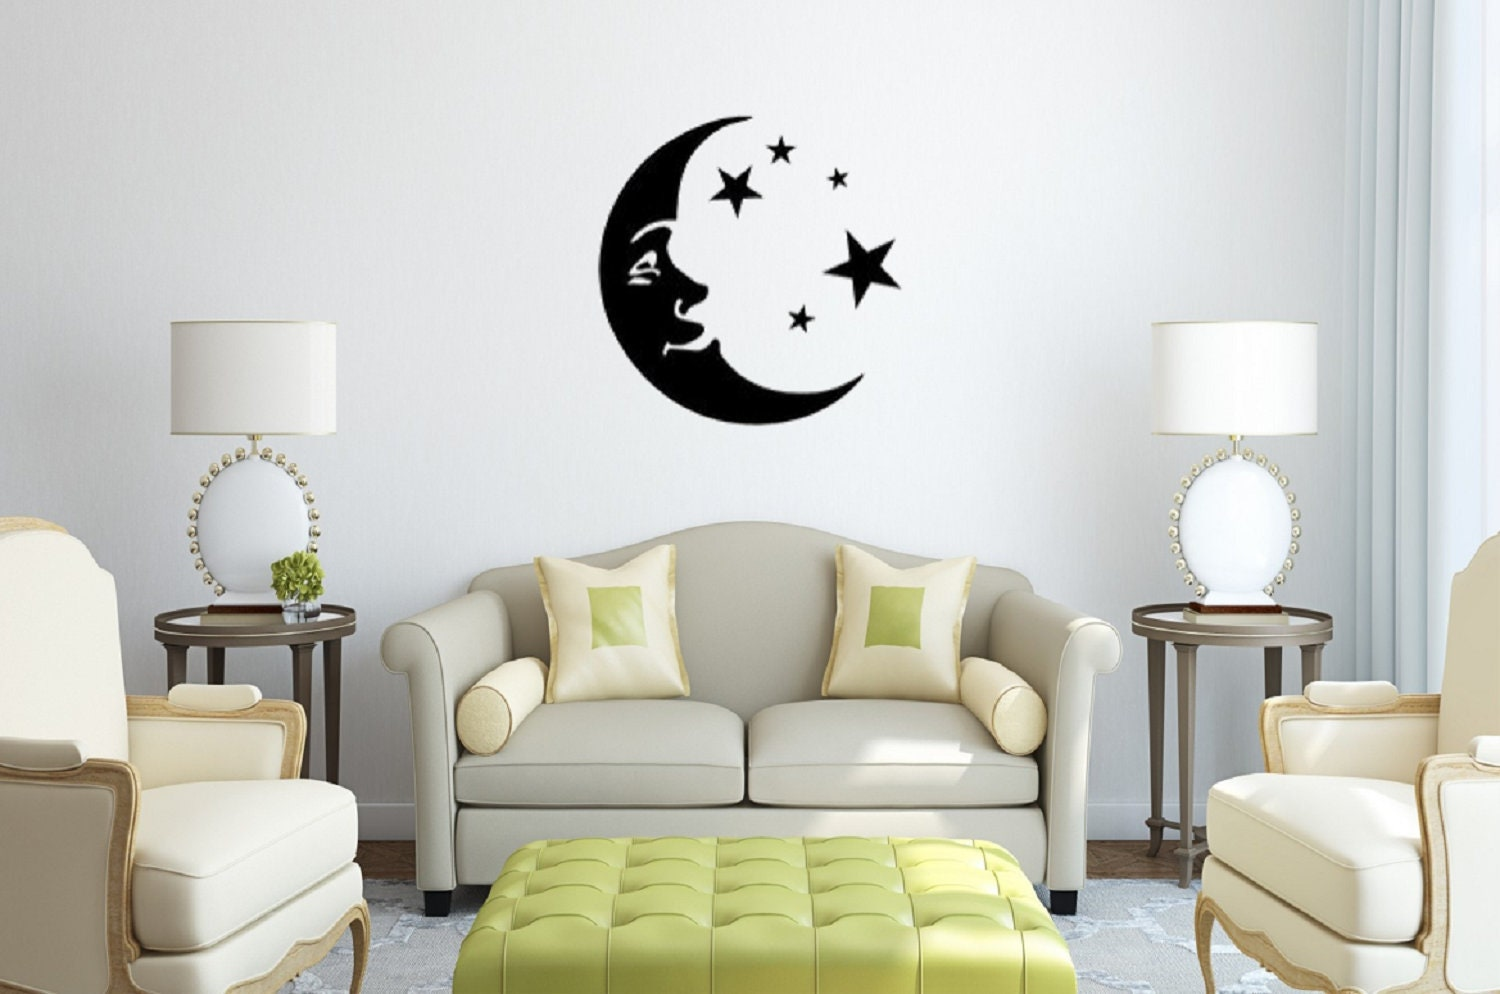 Moon And Stars Wall Decal Bedroom Decal Living Room Decor Couples Decor Living Room Decor Home Decor Moon And Stars Decor